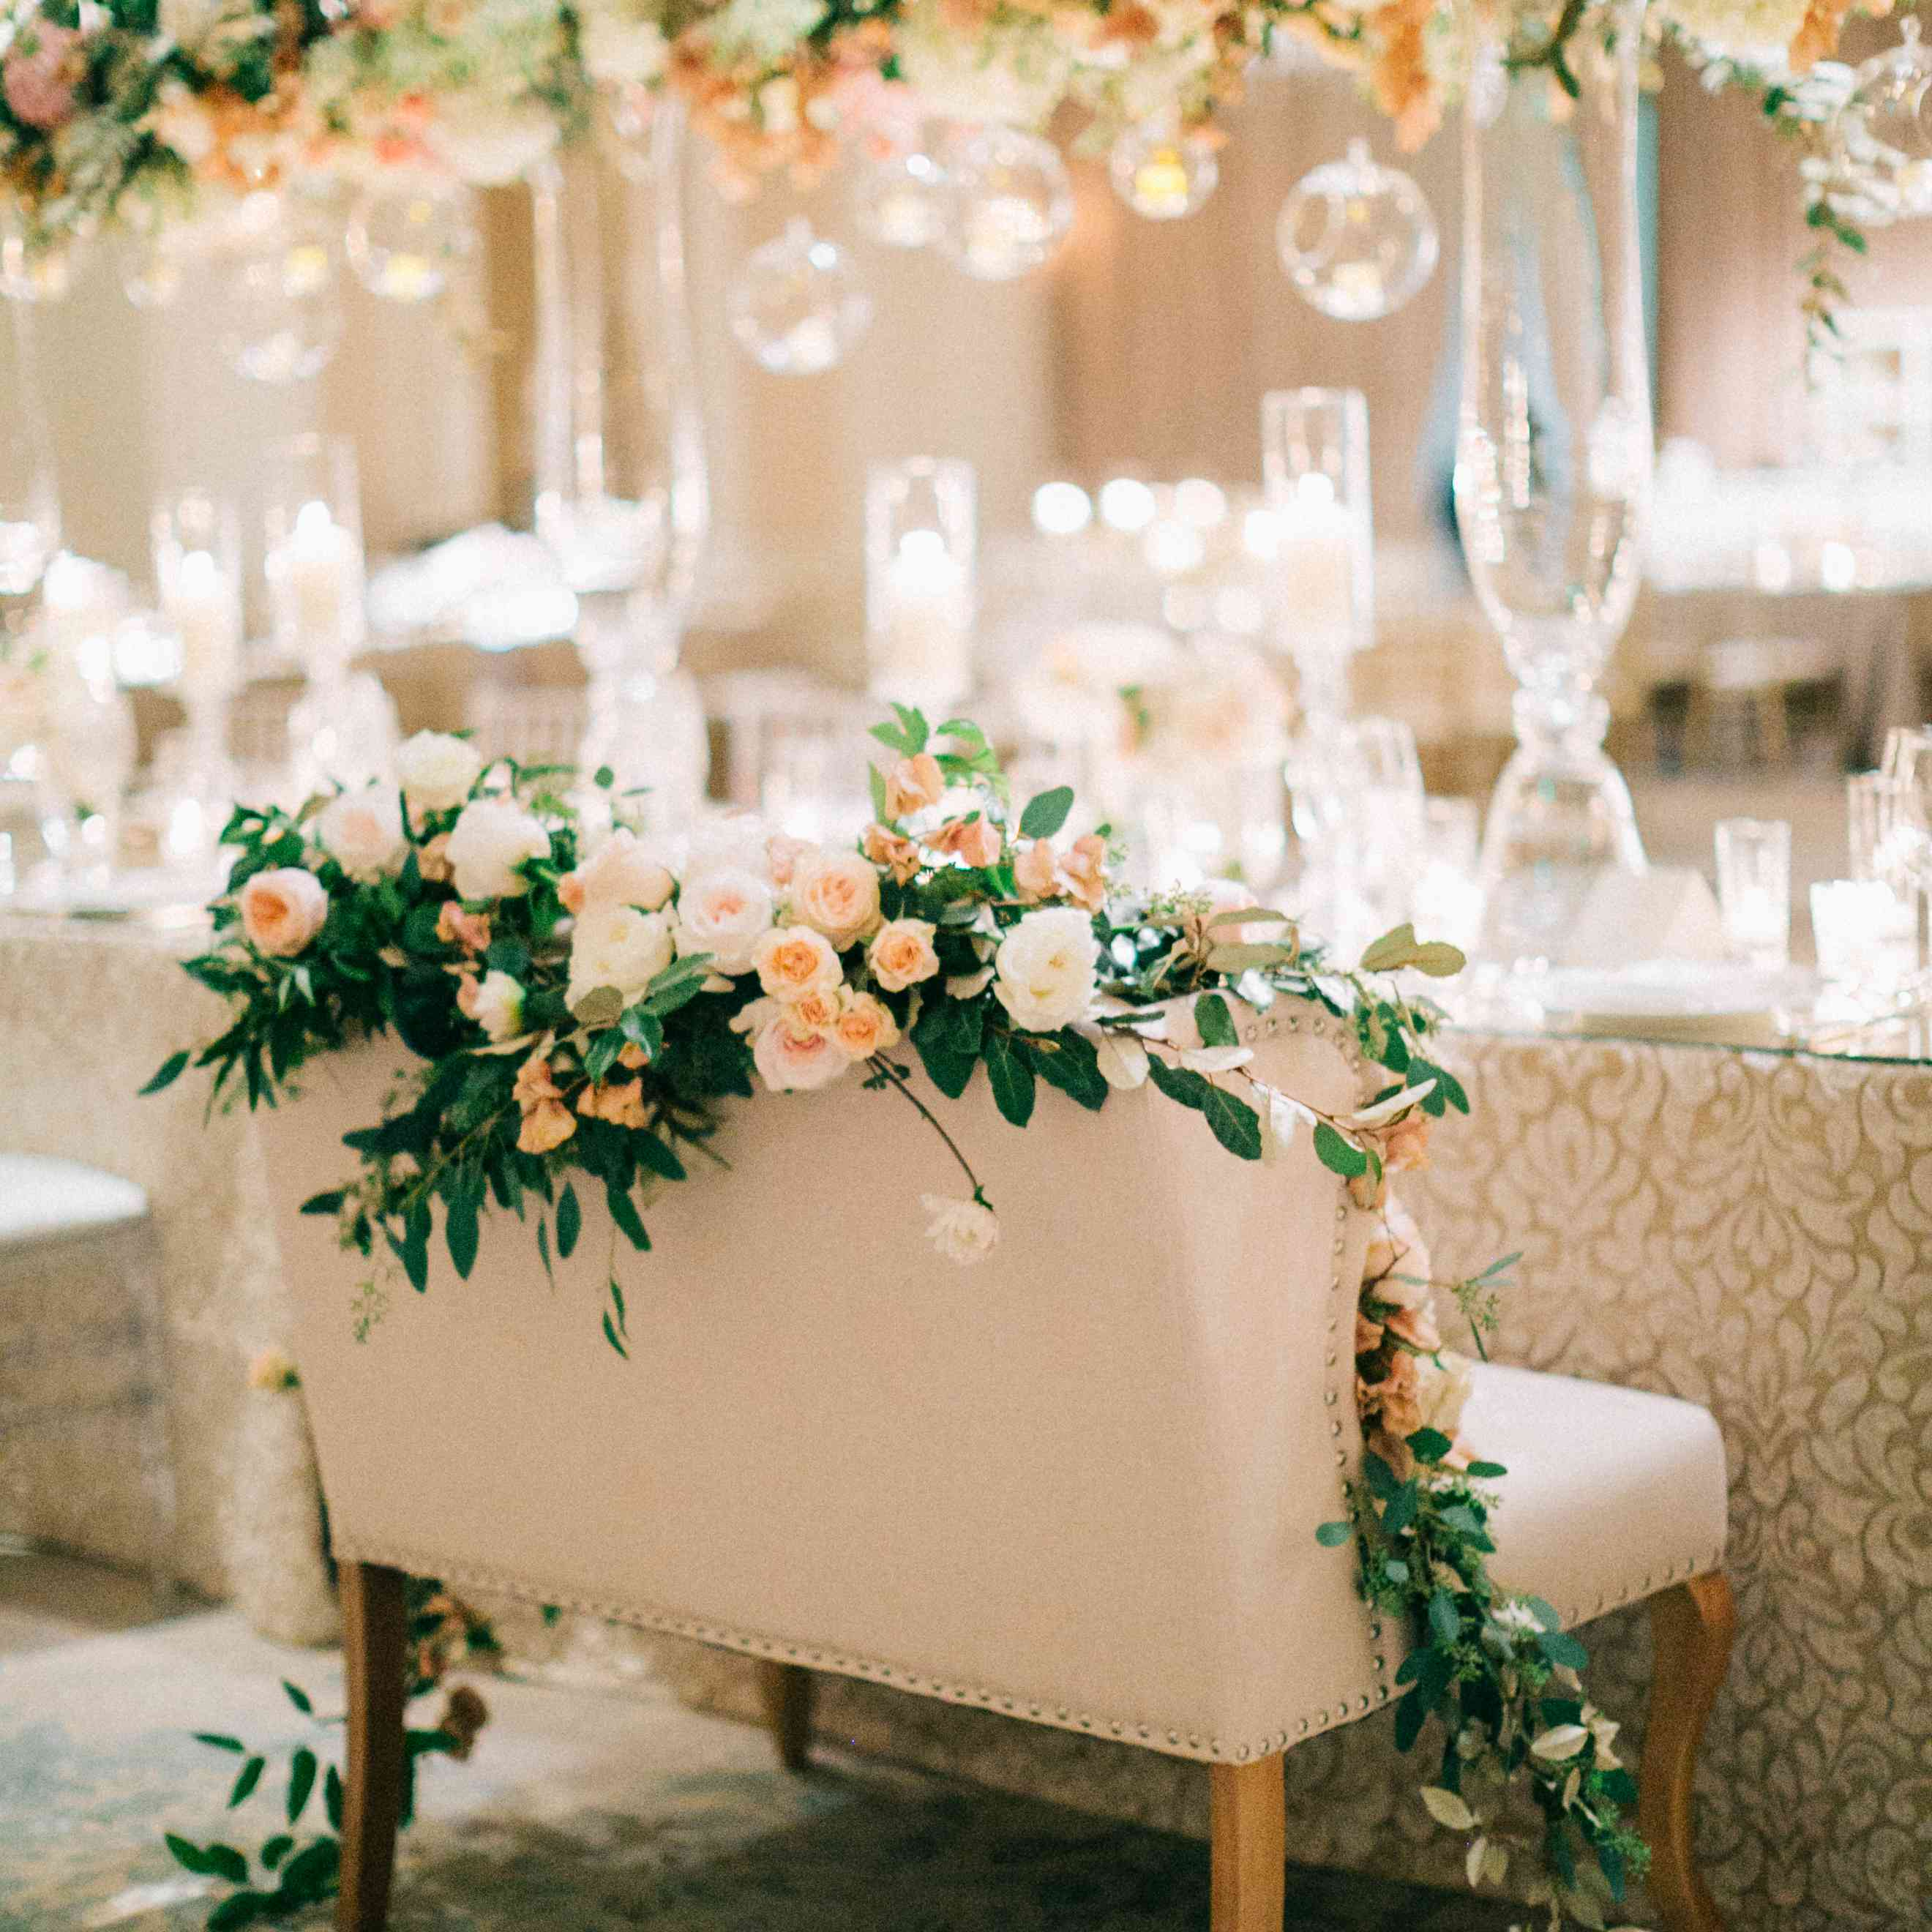 Flowers covering chair at reception